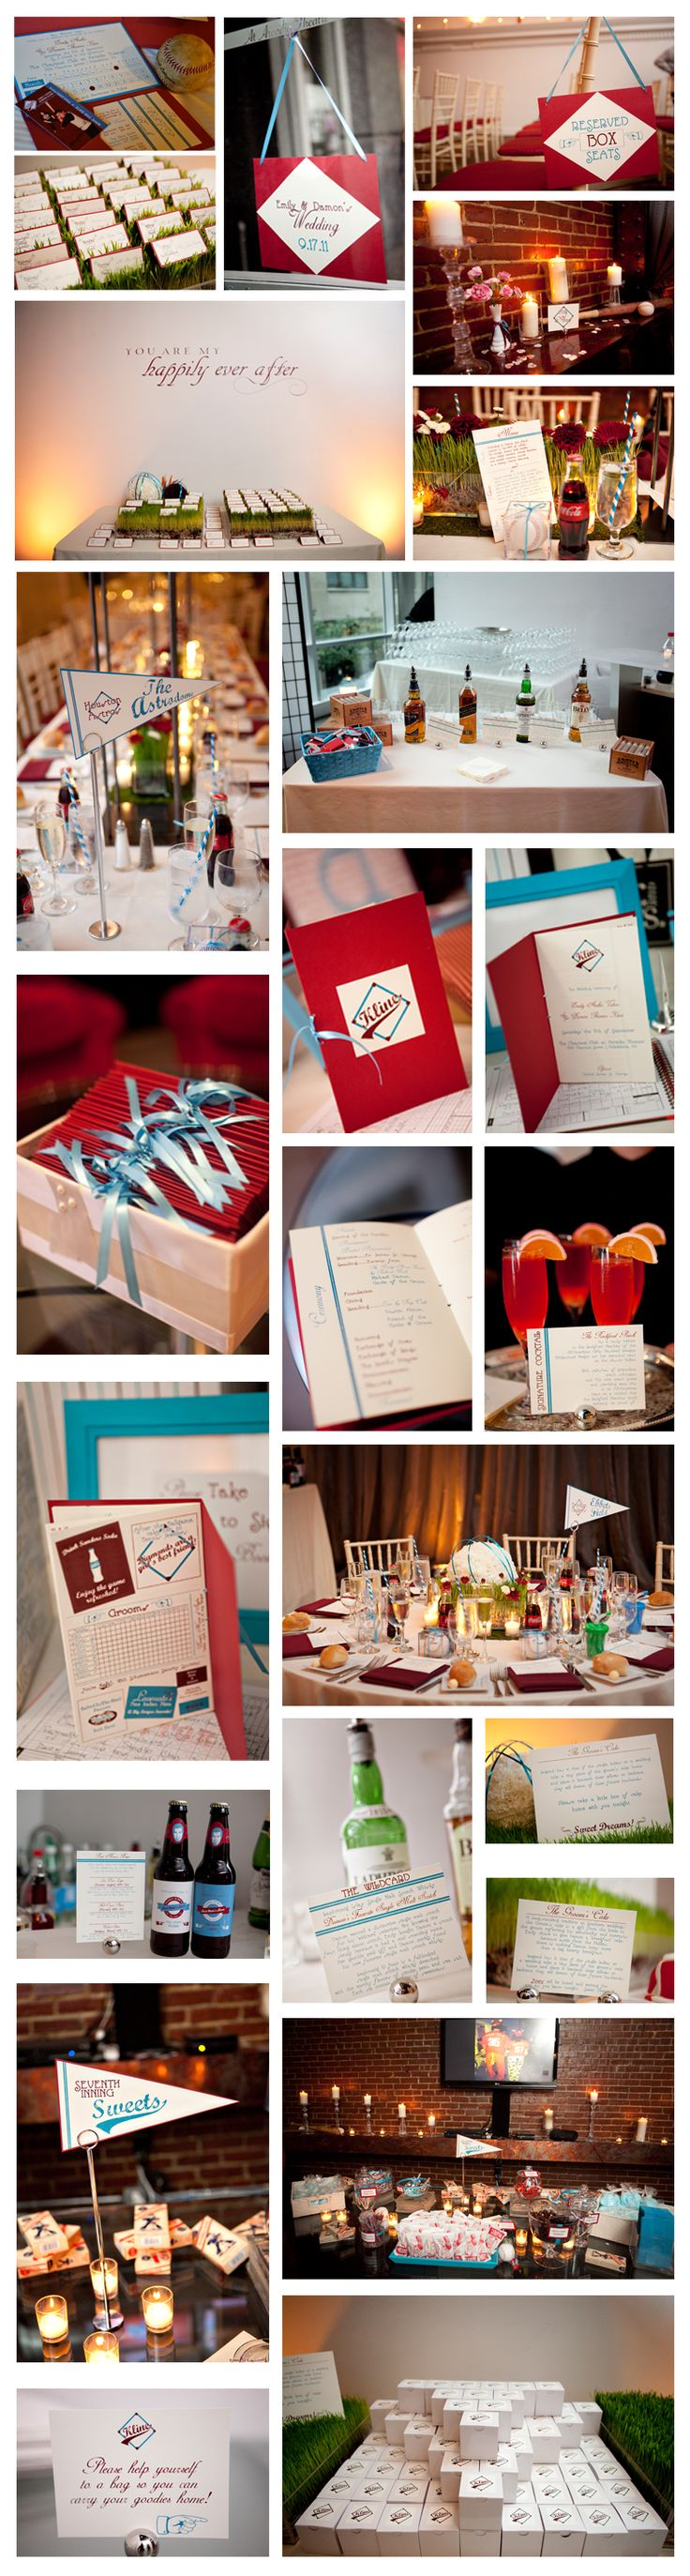 160 Best Baseball Baby Shower Images On Pinterest Centerpieces